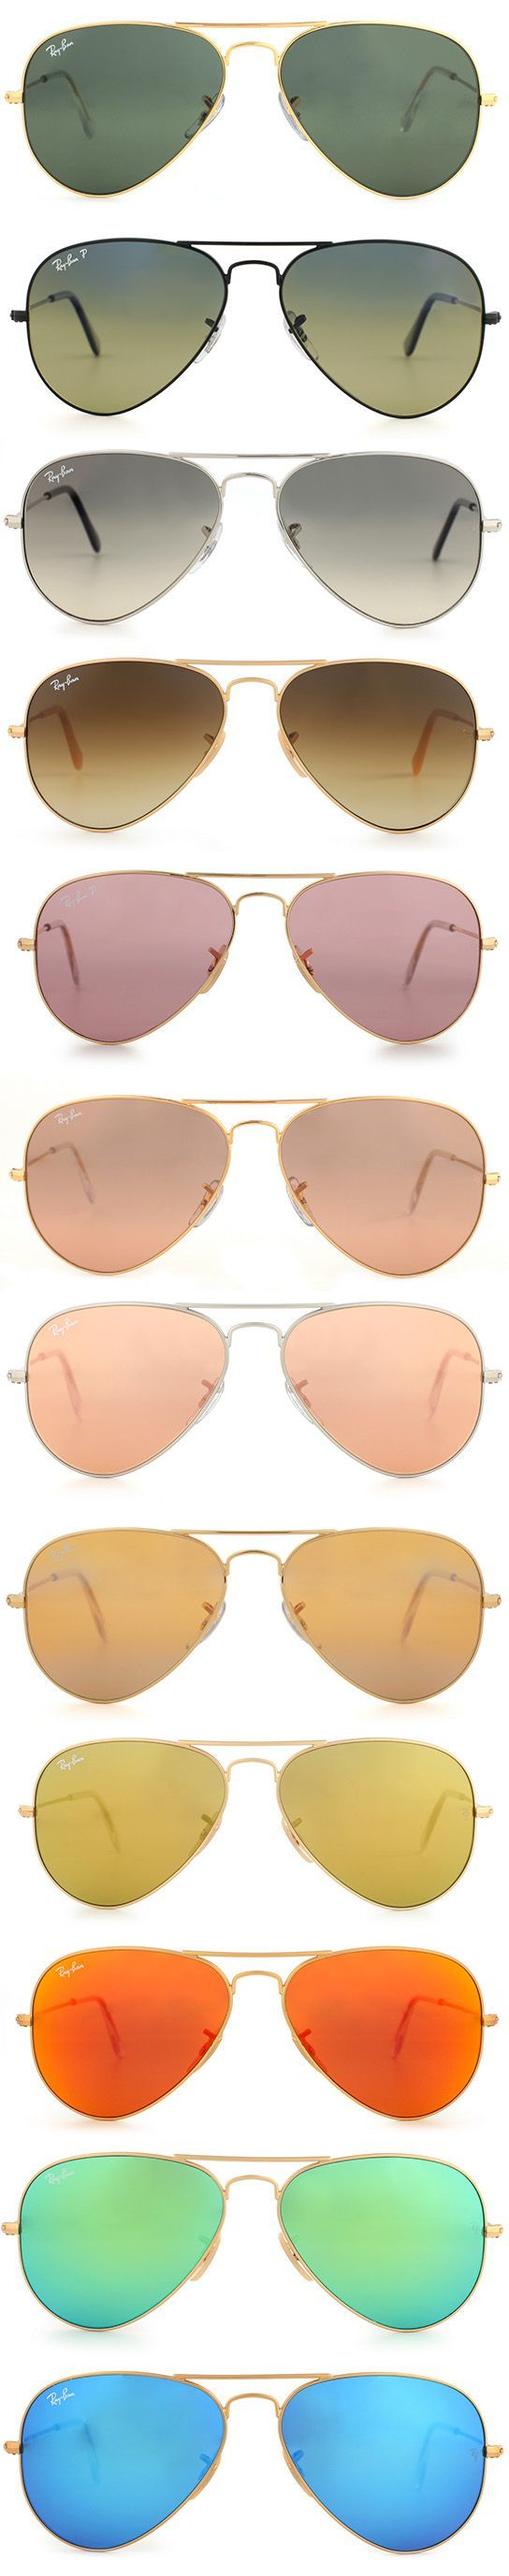 Follow the Ray-Ban Rainbow http://www.framesdirect.com/framesfp/RayBan-sdpes/lb.html #aviators #rayban #sunglasses